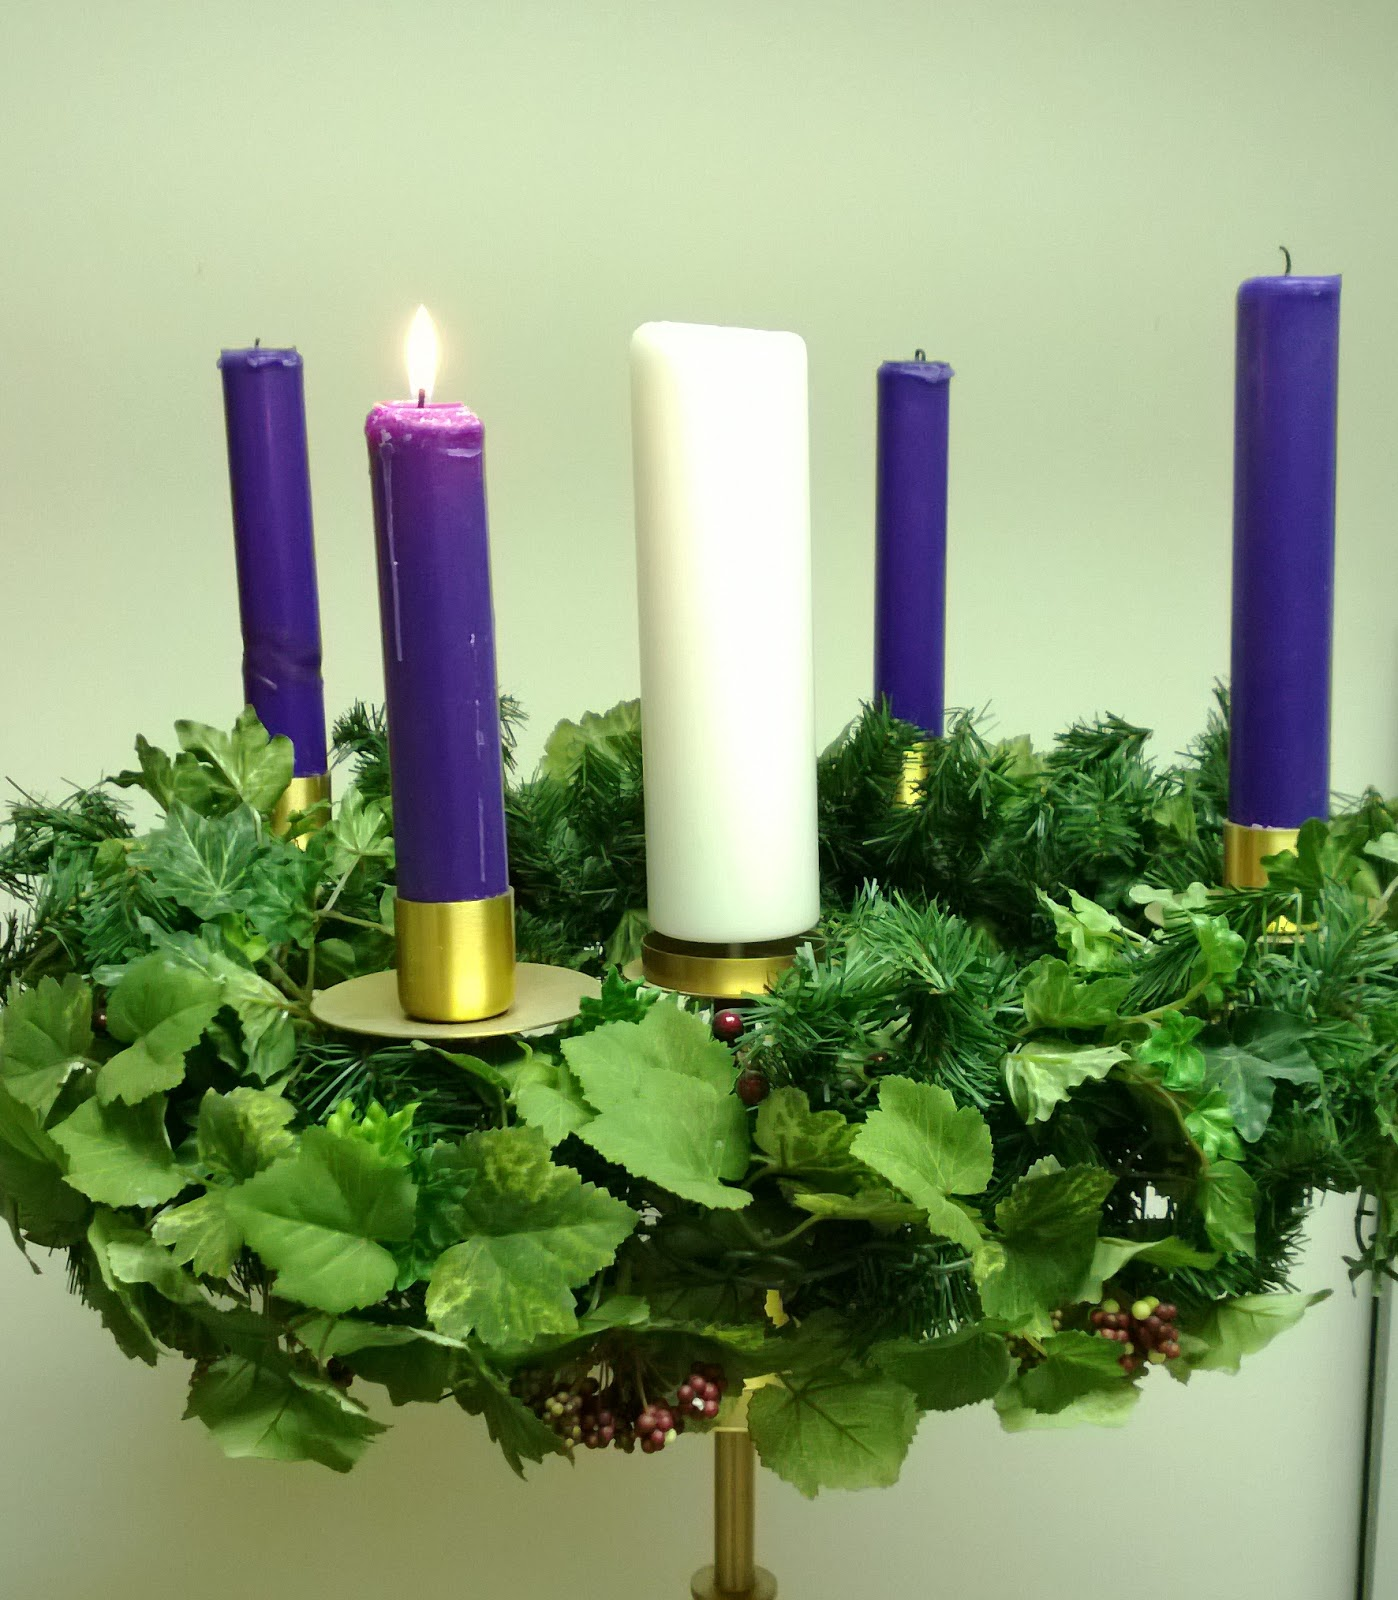 ... With Children: Year C - First Sunday of Advent (November 29, 2015